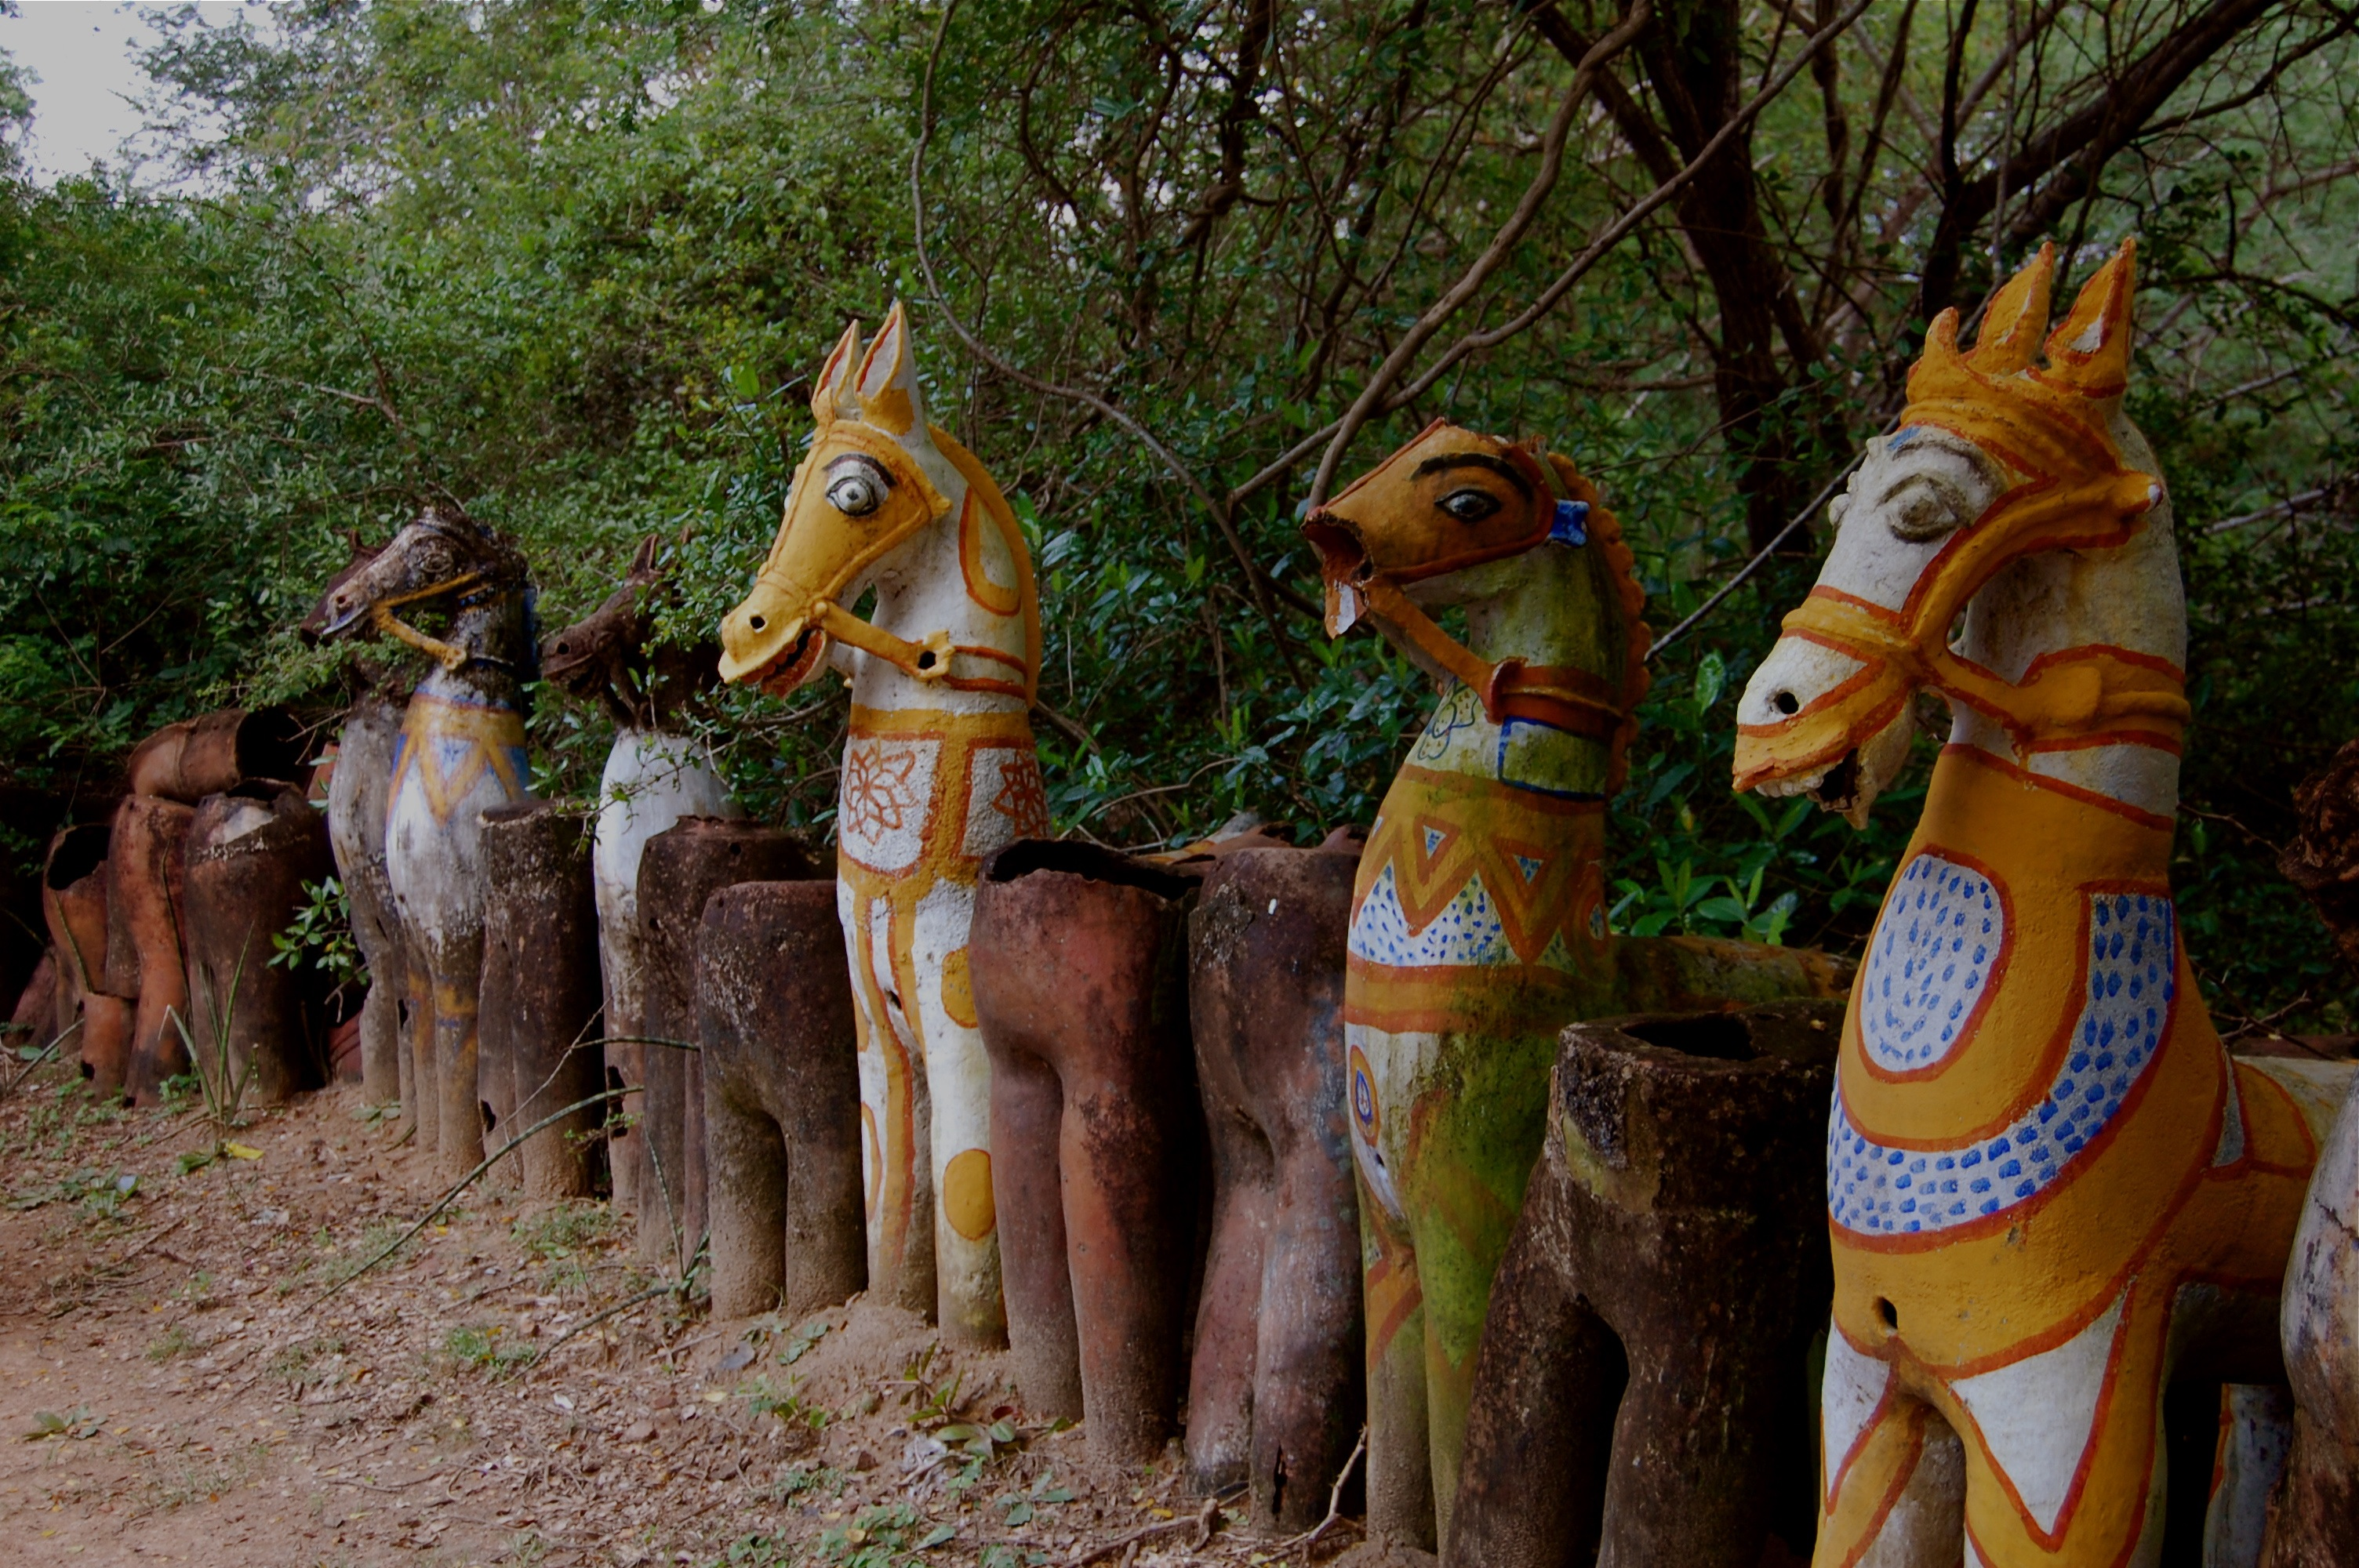 Clay Horses And Fertility Wishes At A Tree Temple Near Pudukkottai Second Stop On The Roadtrip